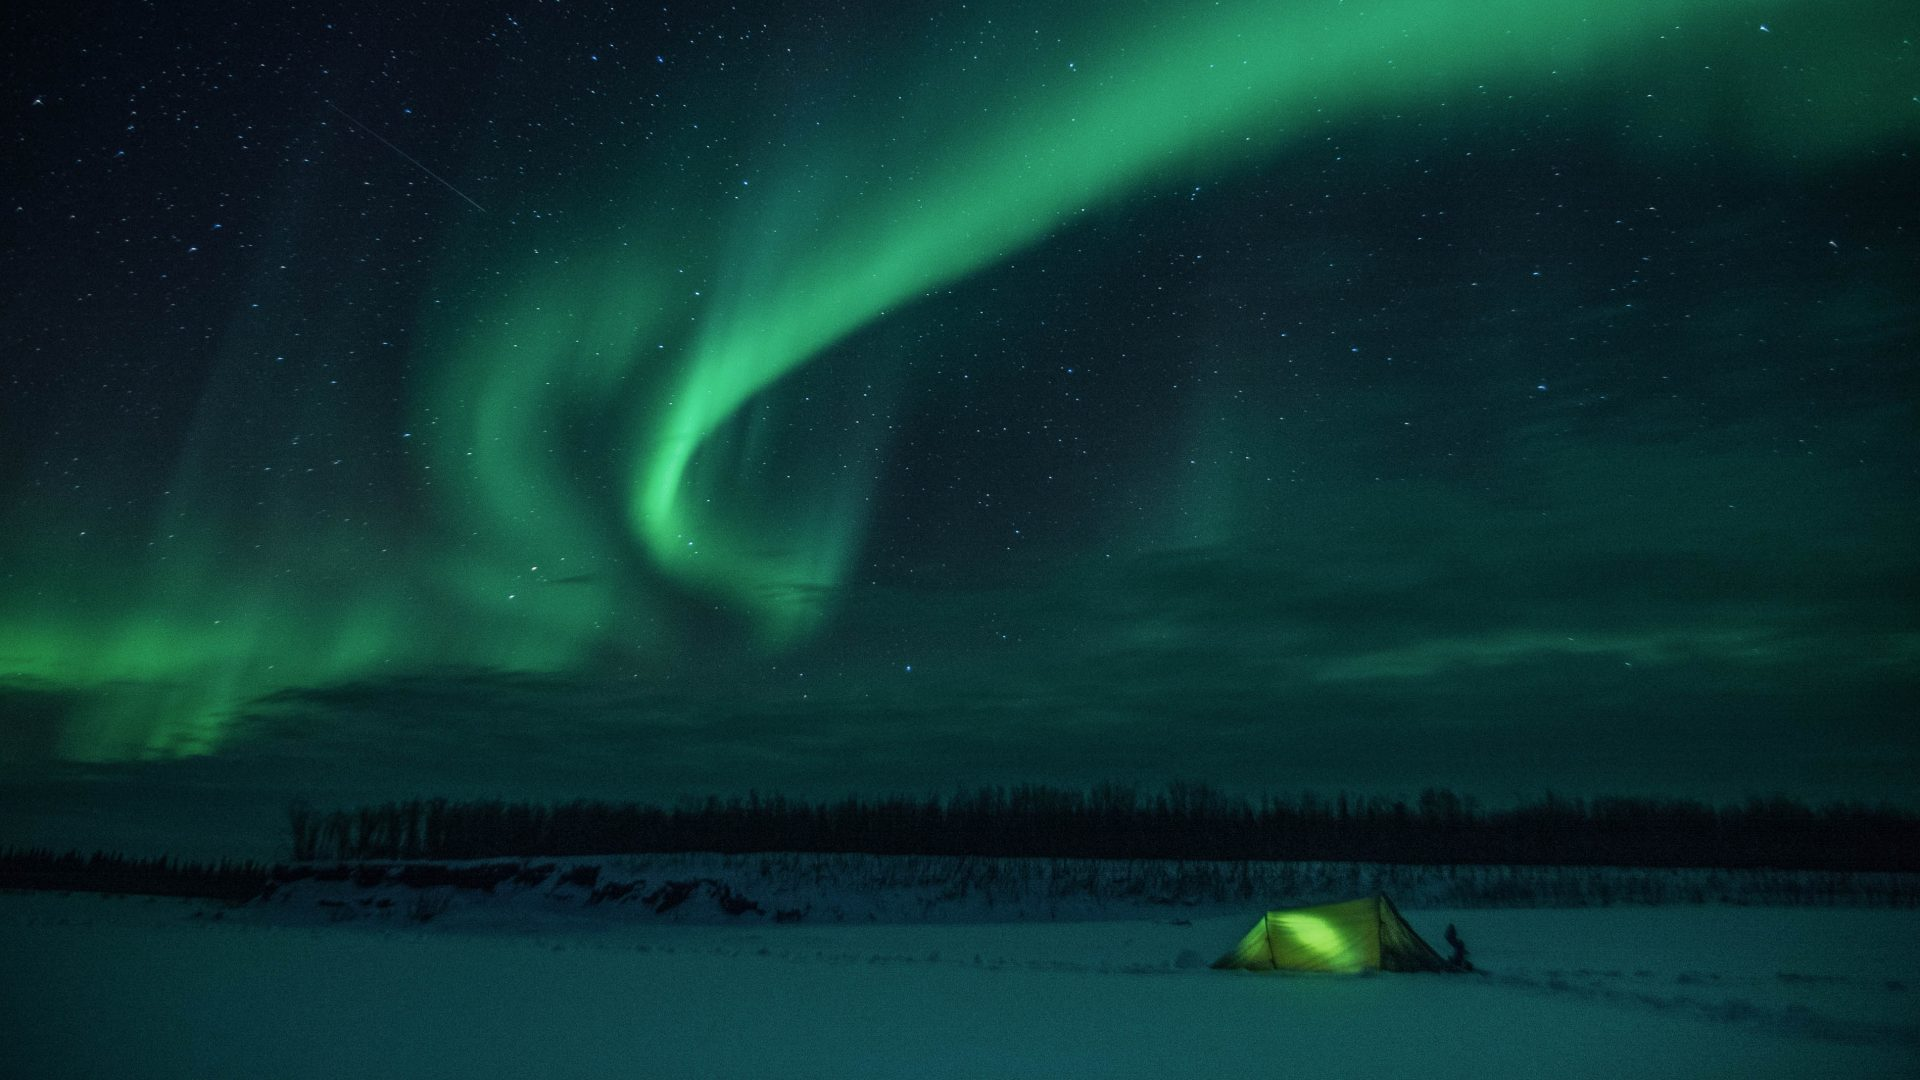 Spending a night under the northern lights in the Canadian Arctic.